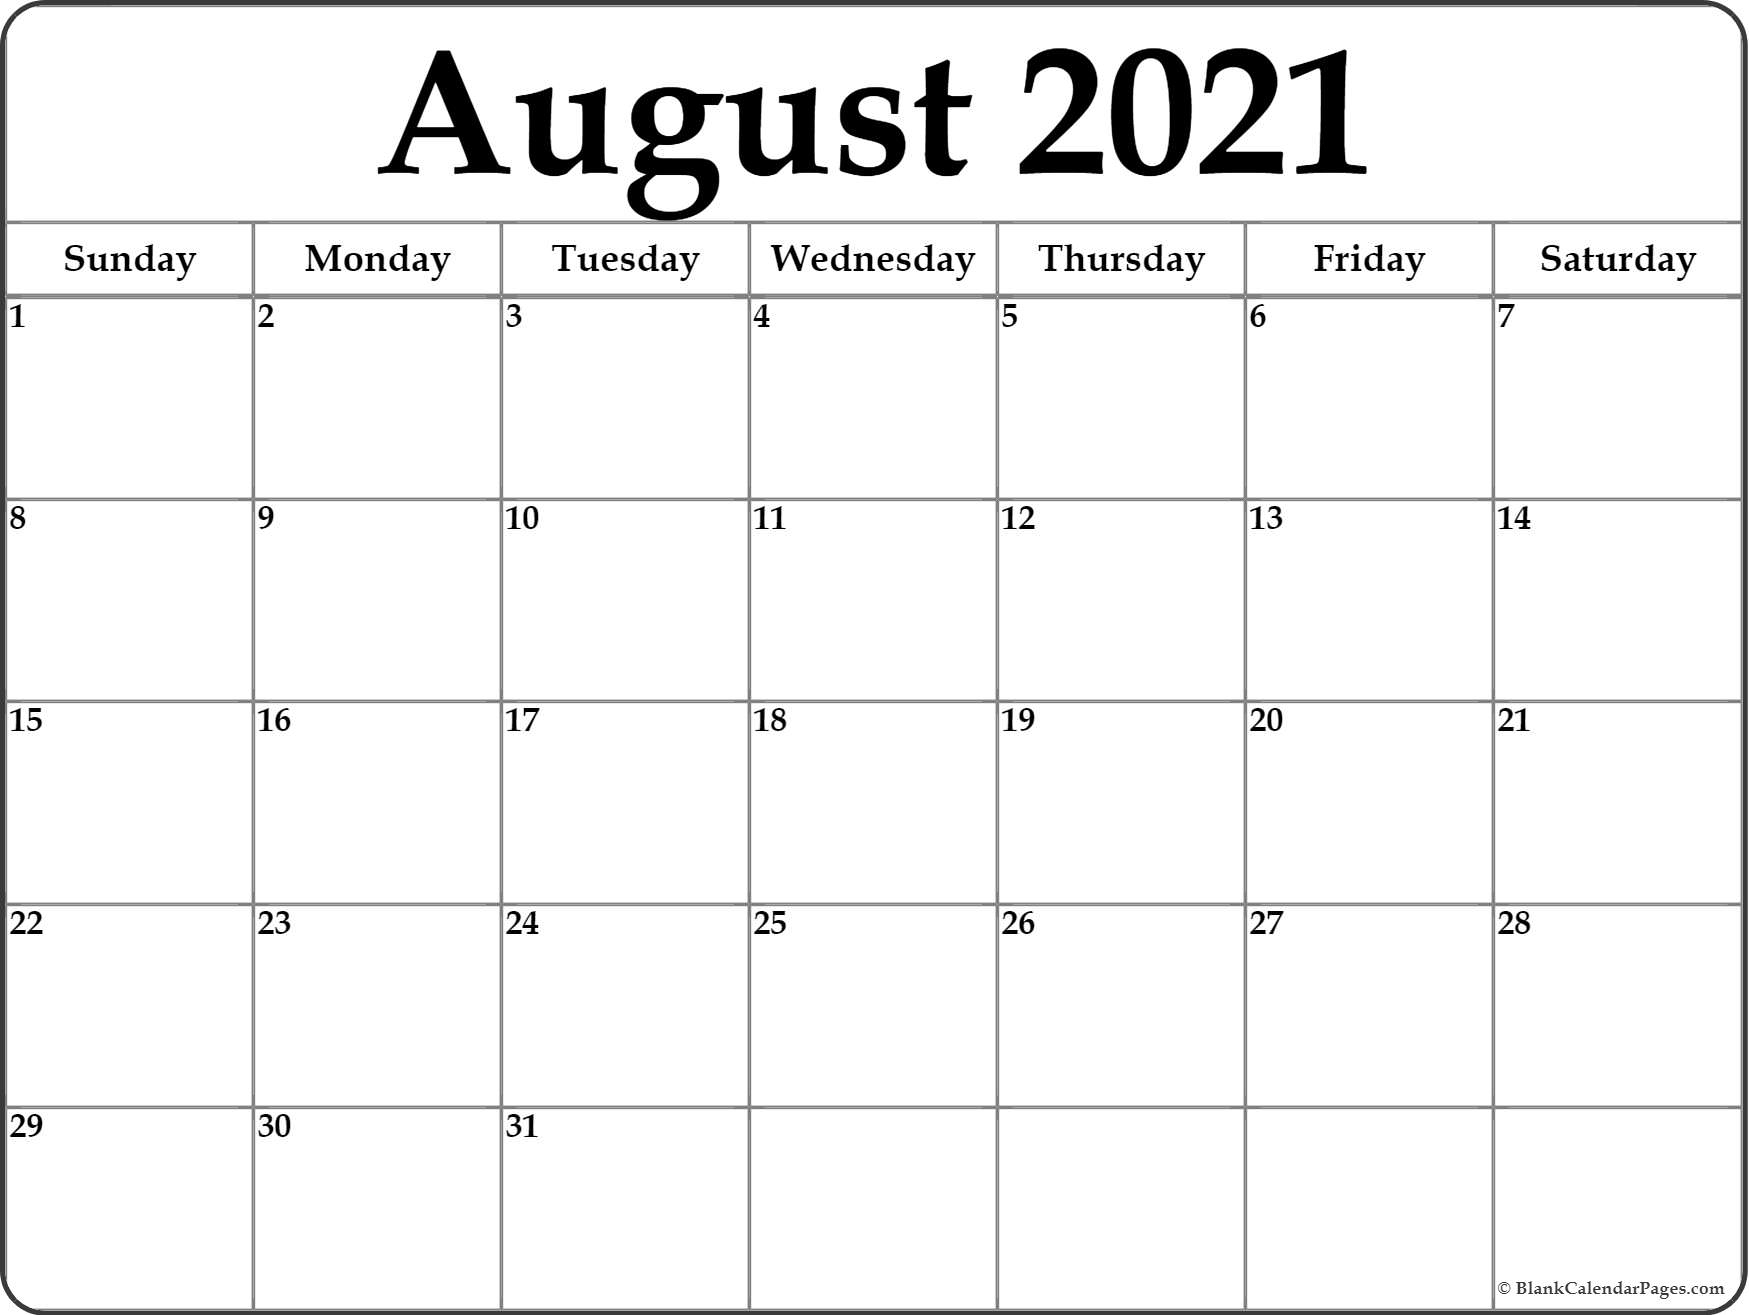 Get Free Printable Calanders For August 2021 Through December 2021